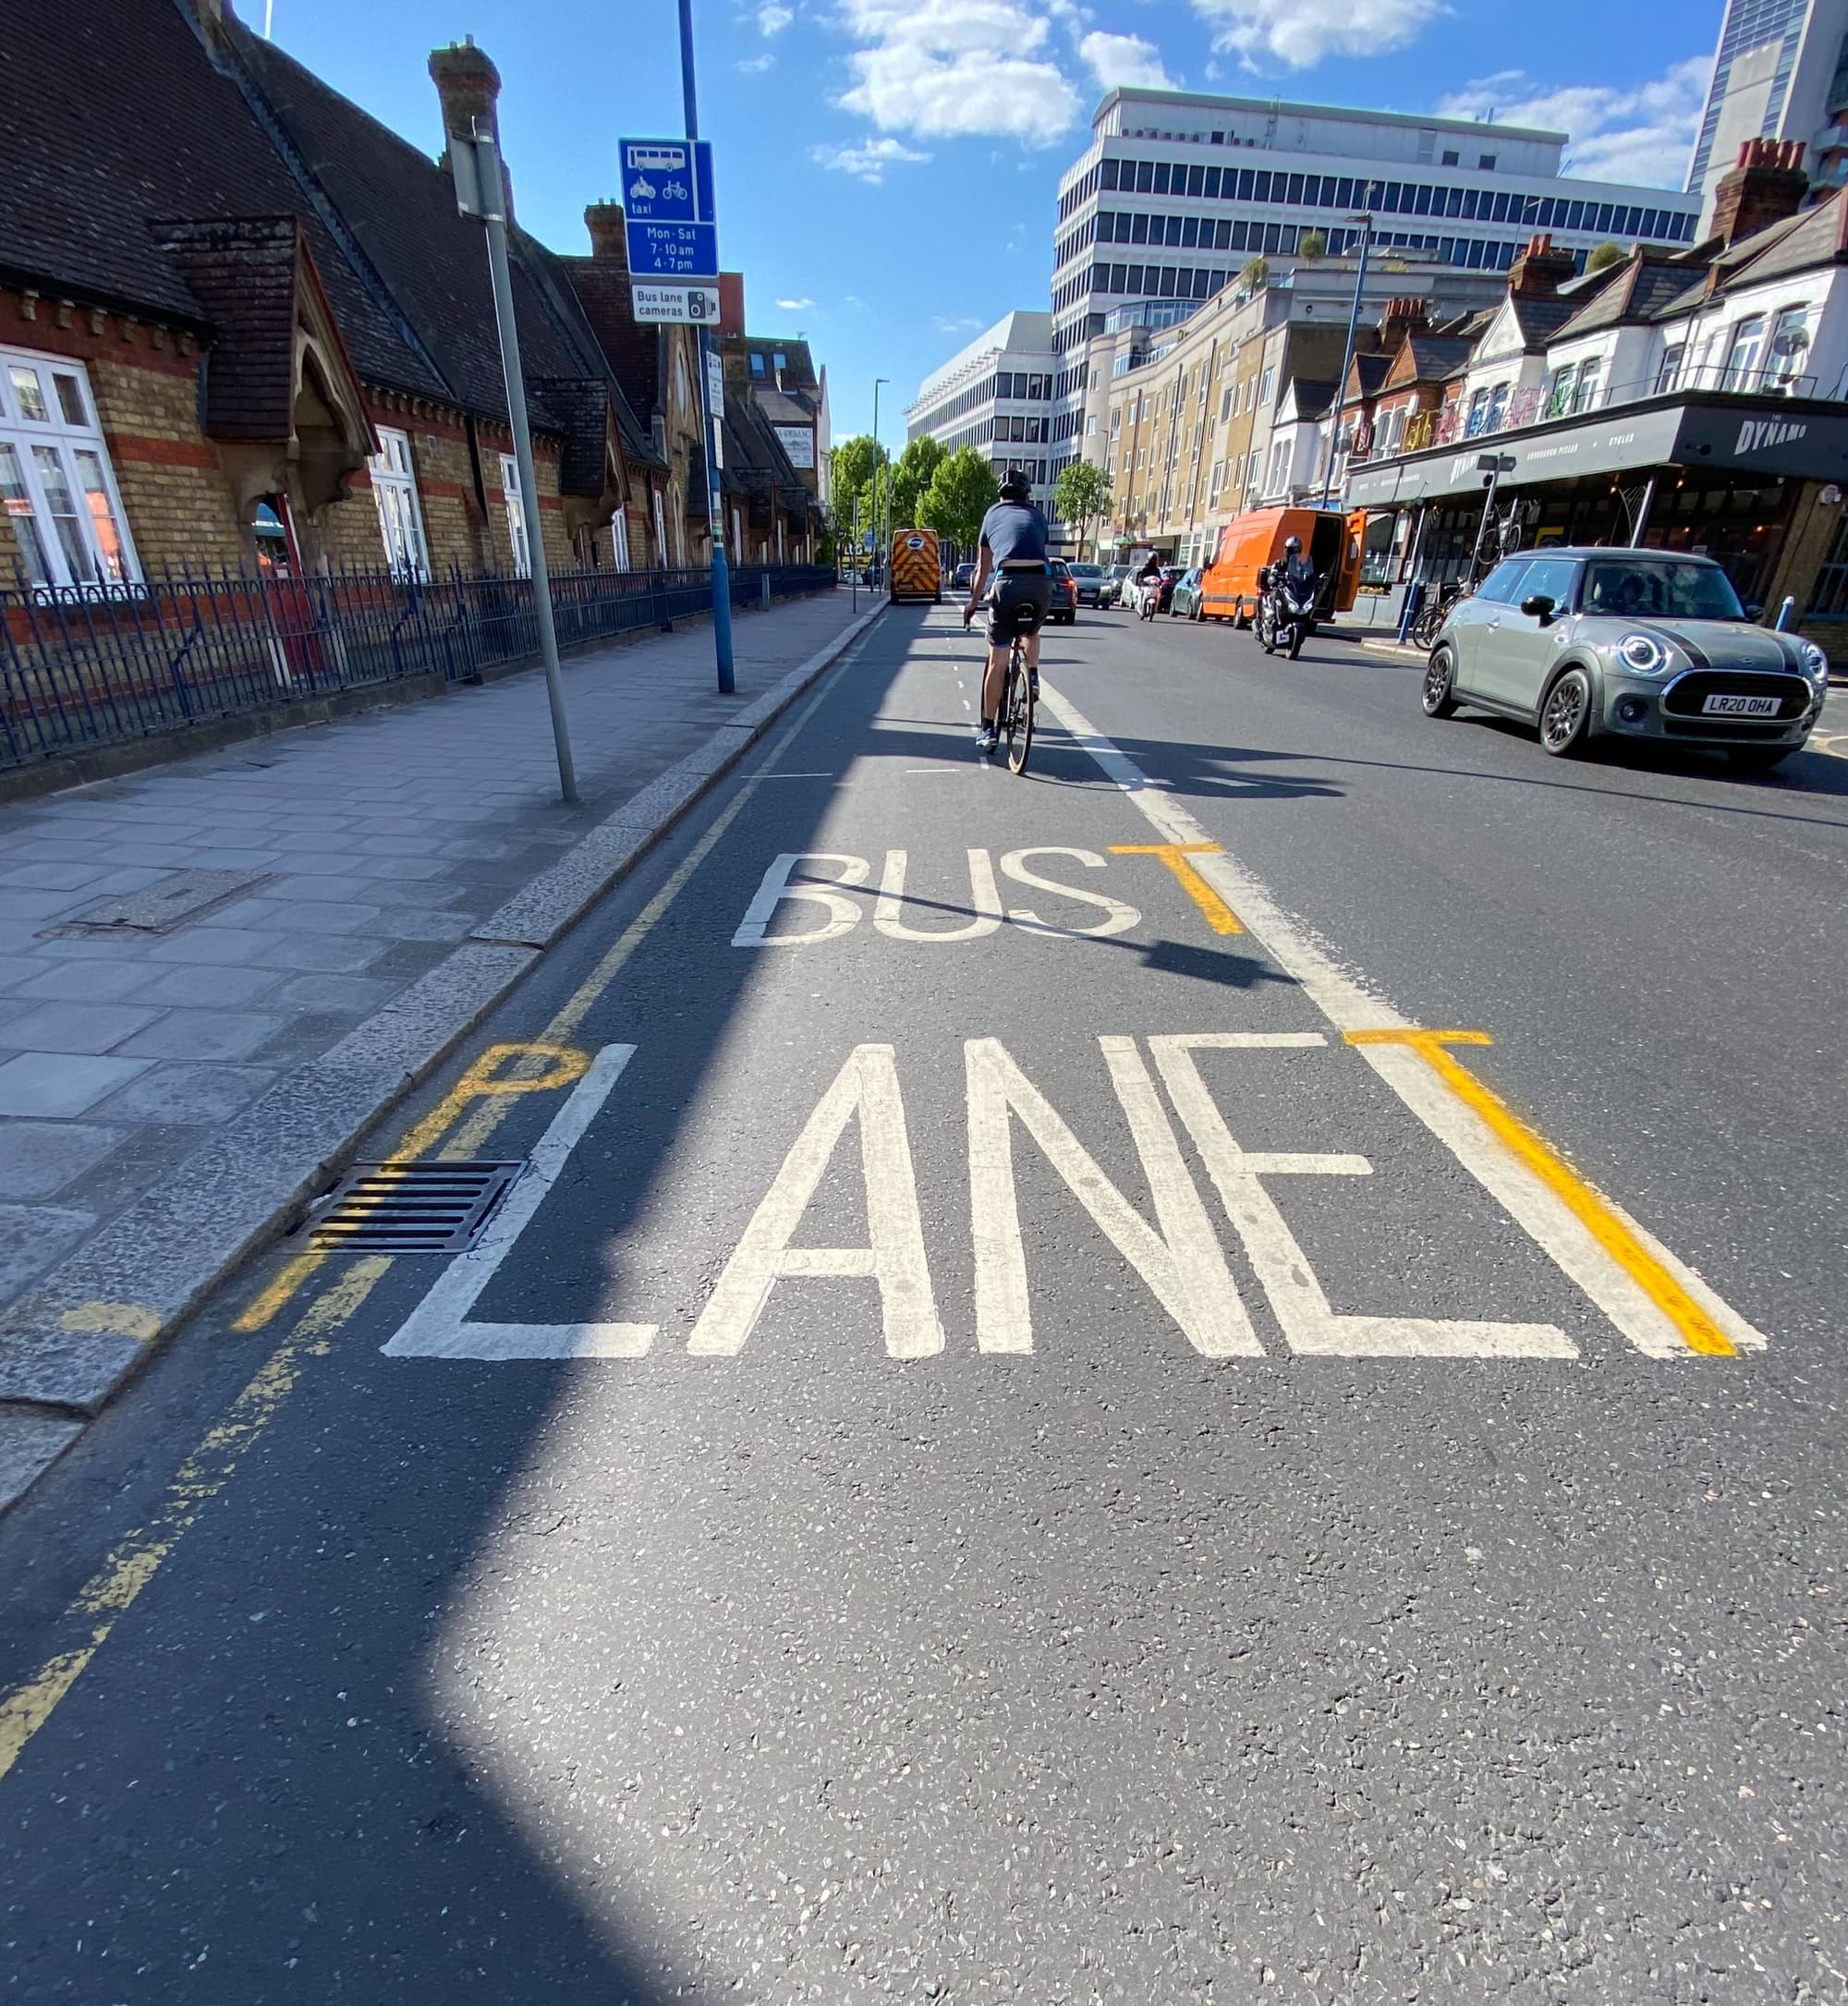 A bus lane in Putney is repurposed to express concern over covid or possibly the environment.